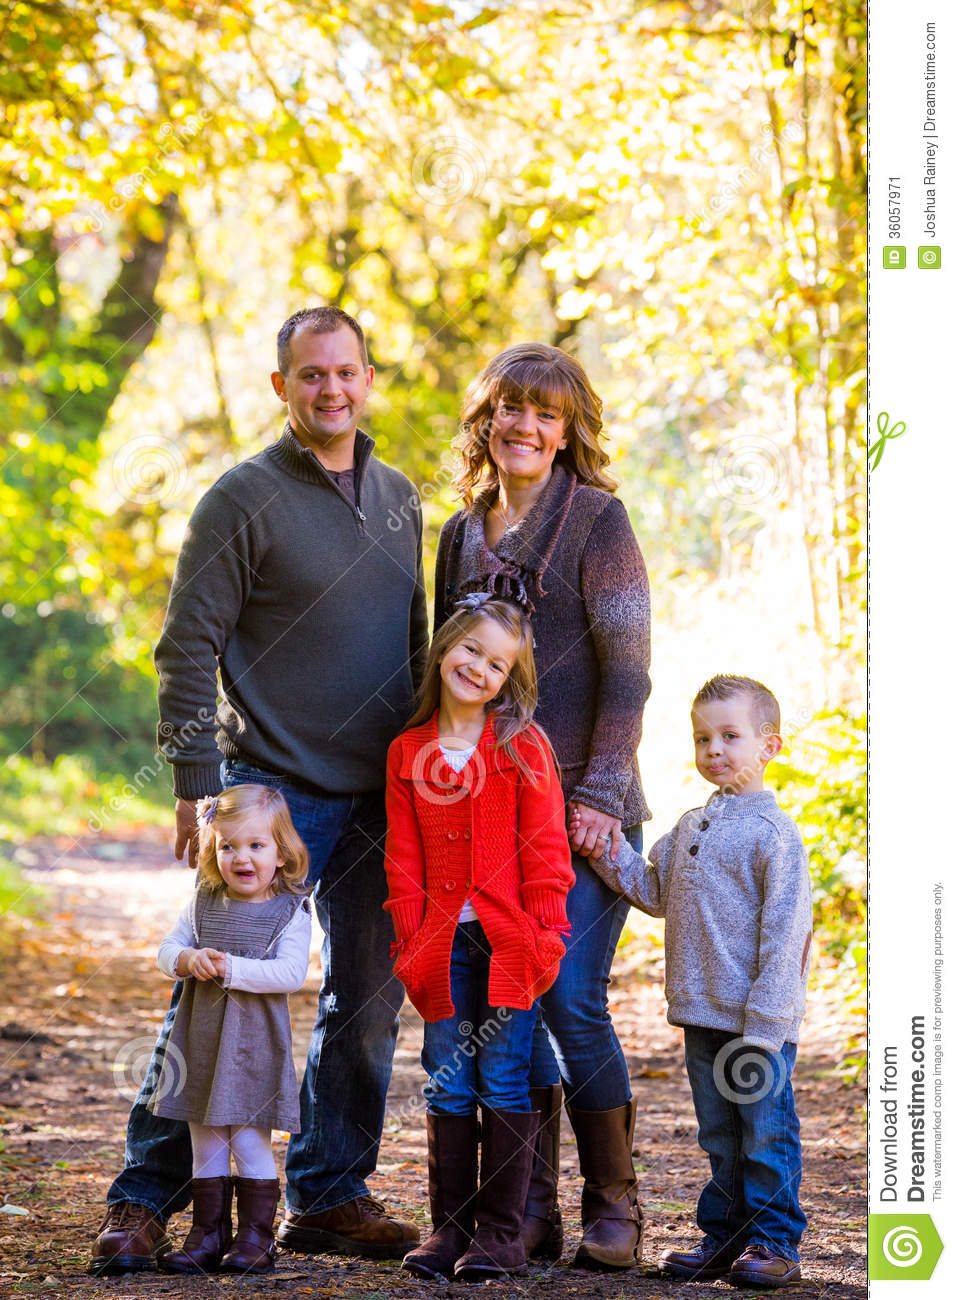 five together children mother father person three stand nuclear outdoors portrait parents outside guy